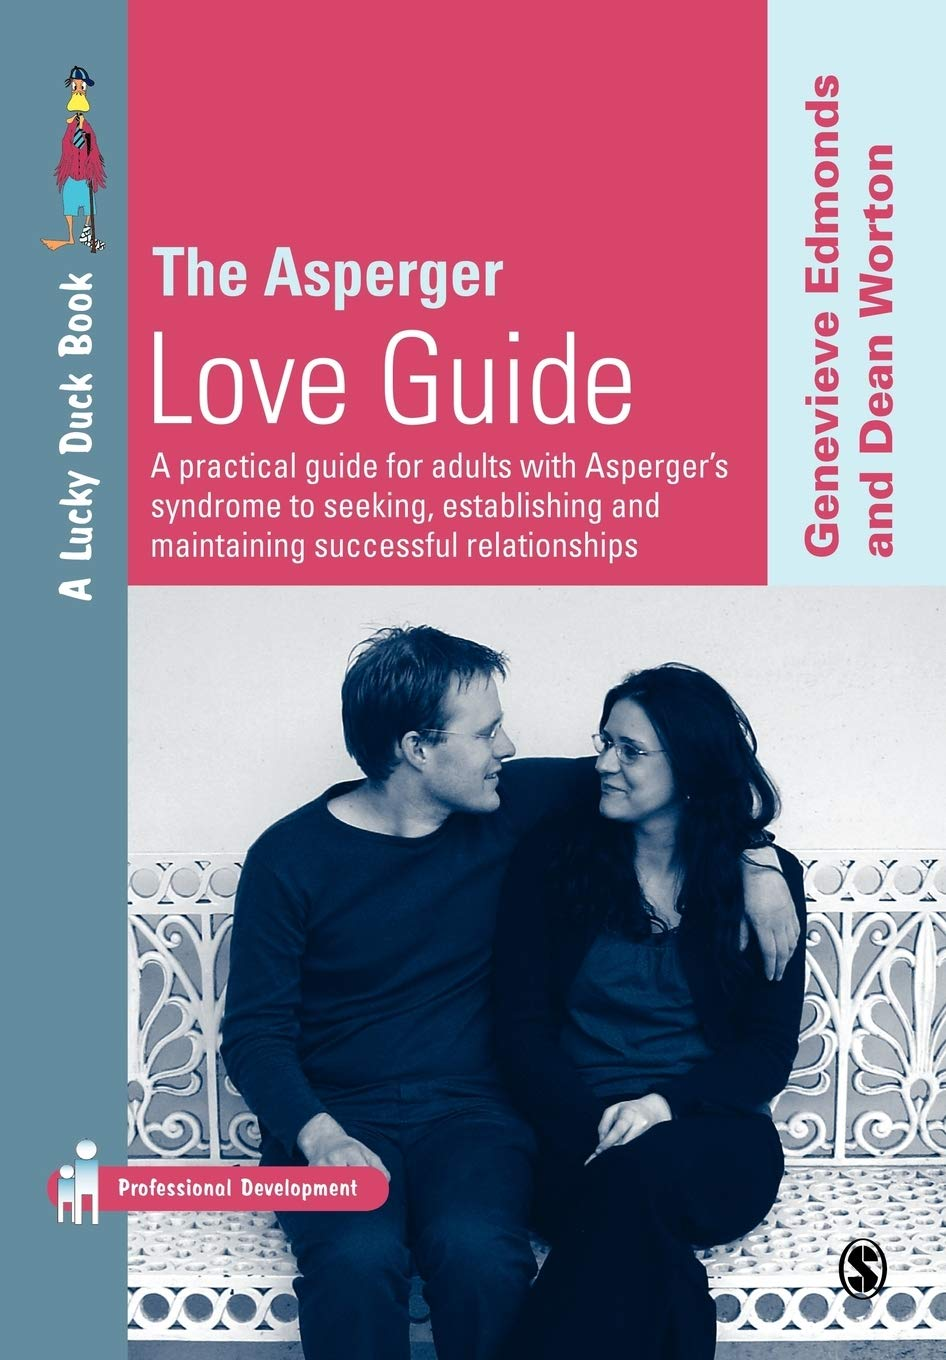 The Asperger Love Guide book cover